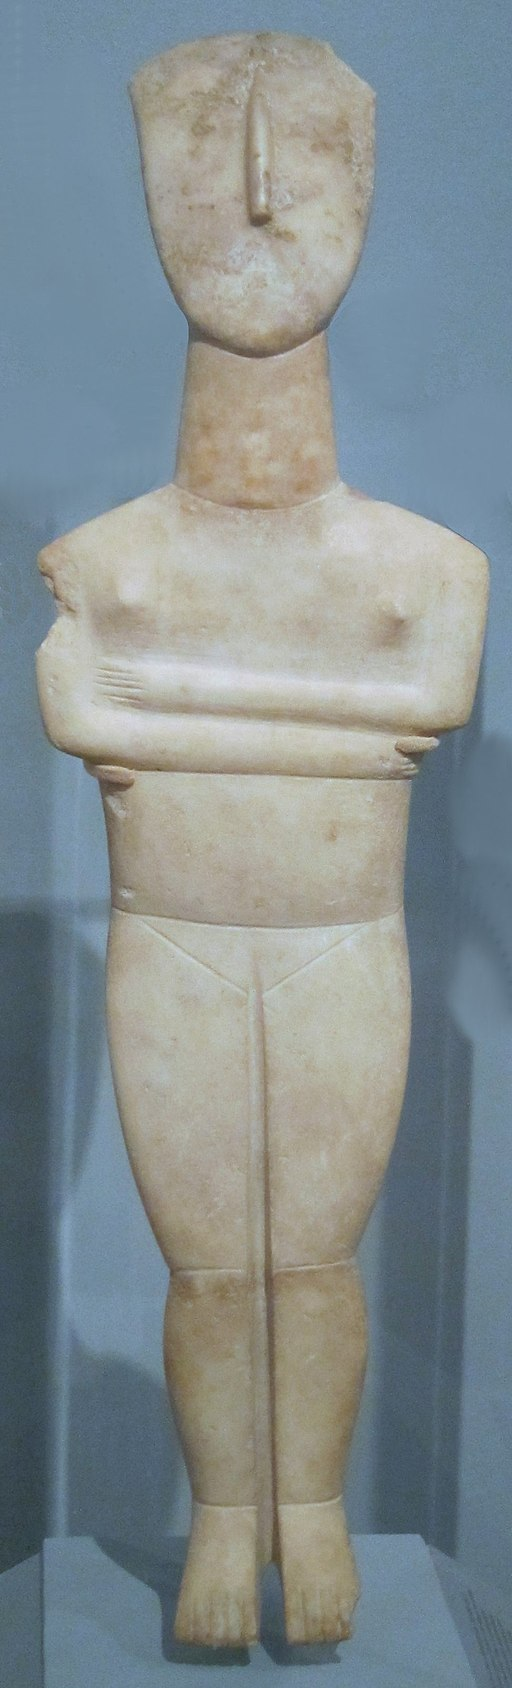 """Female Figure"" from Cyclades: Greek Island Group in the Aegean Sea"